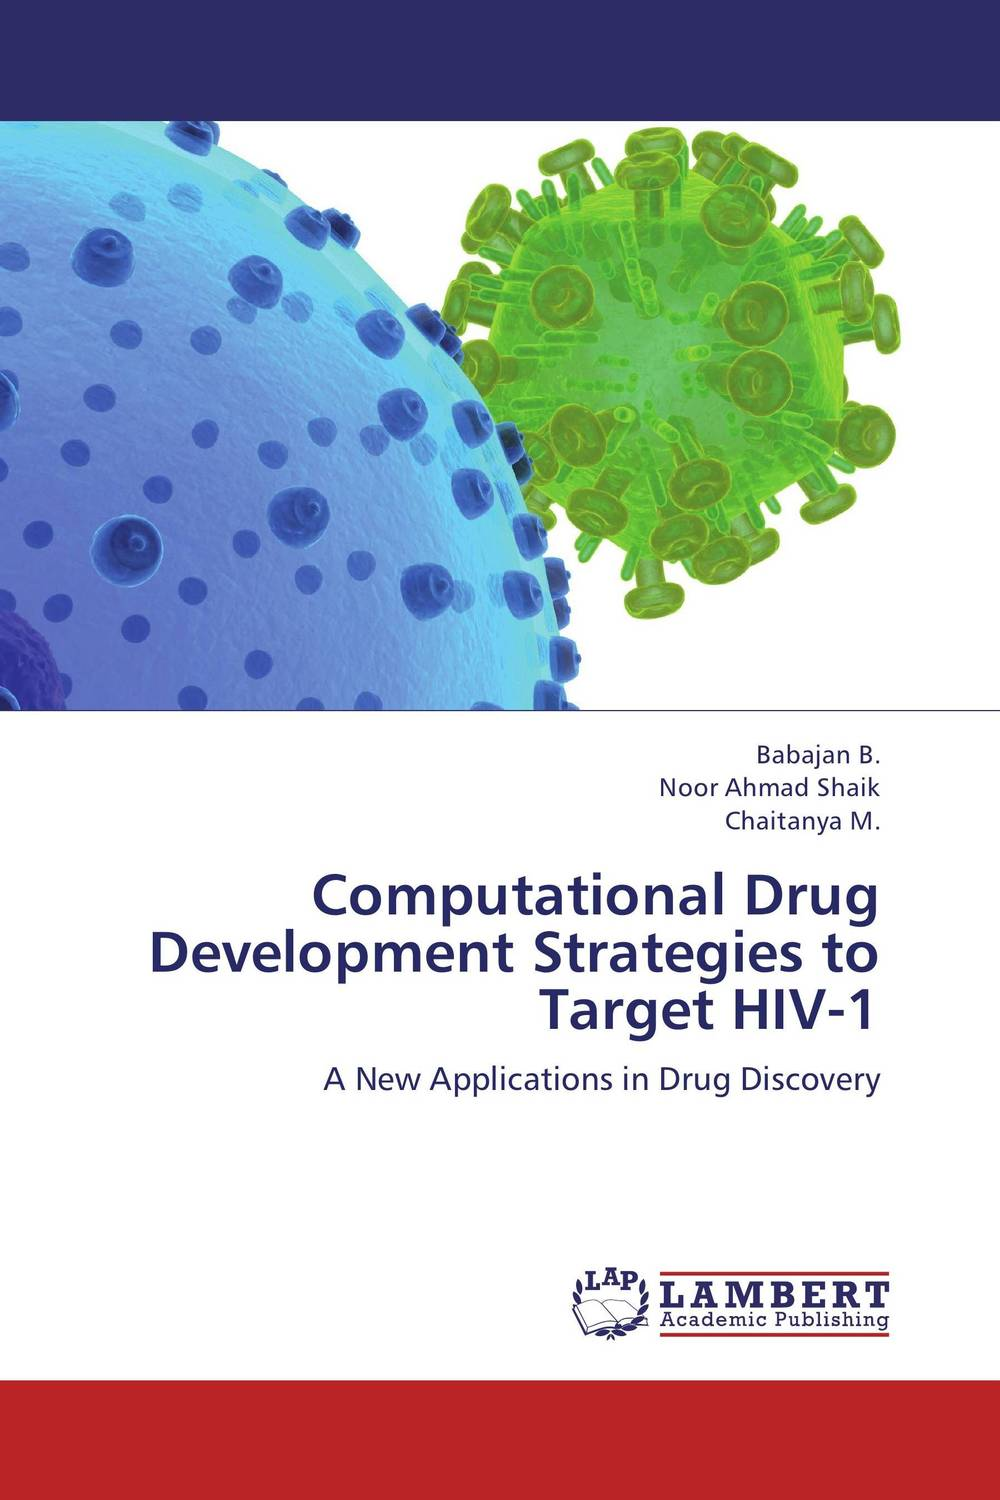 Computational Drug Development Strategies to Target HIV-1 development of a computational interface for small hydropower plant